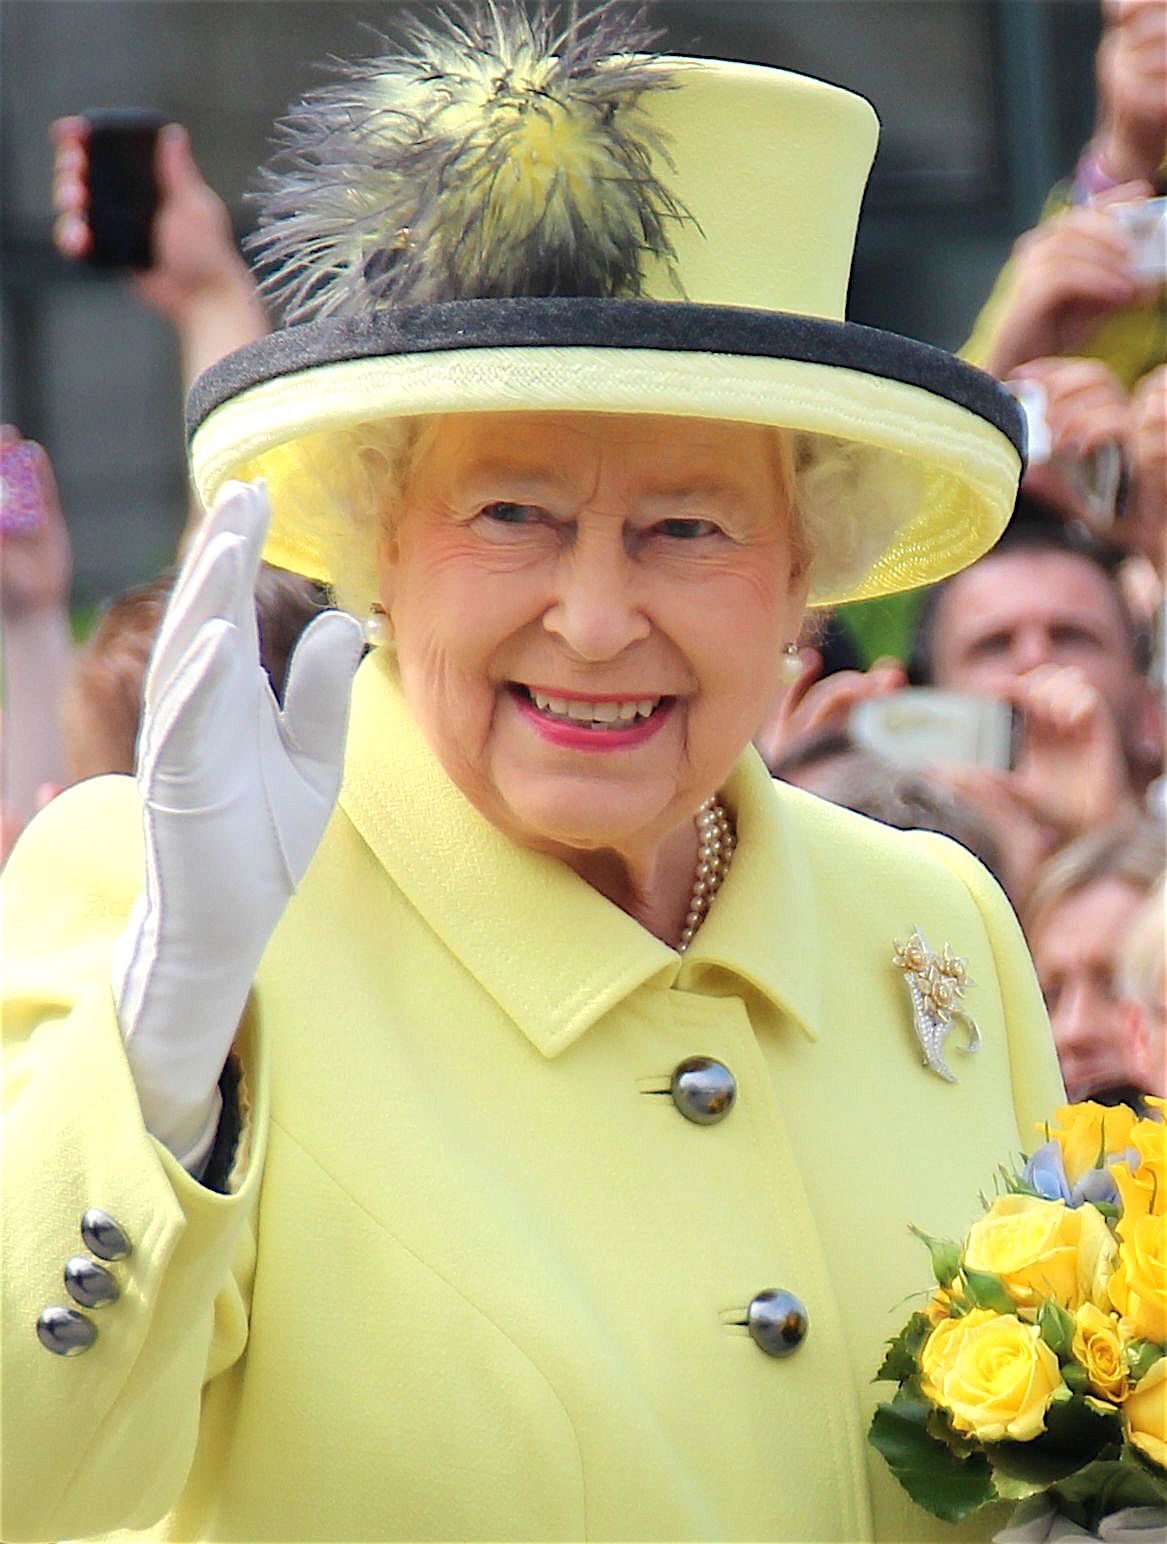 Elizabeth II in 2015 © PolizeiBerlin - licence [CC BY-SA 4.0] from Wikimedia Commons